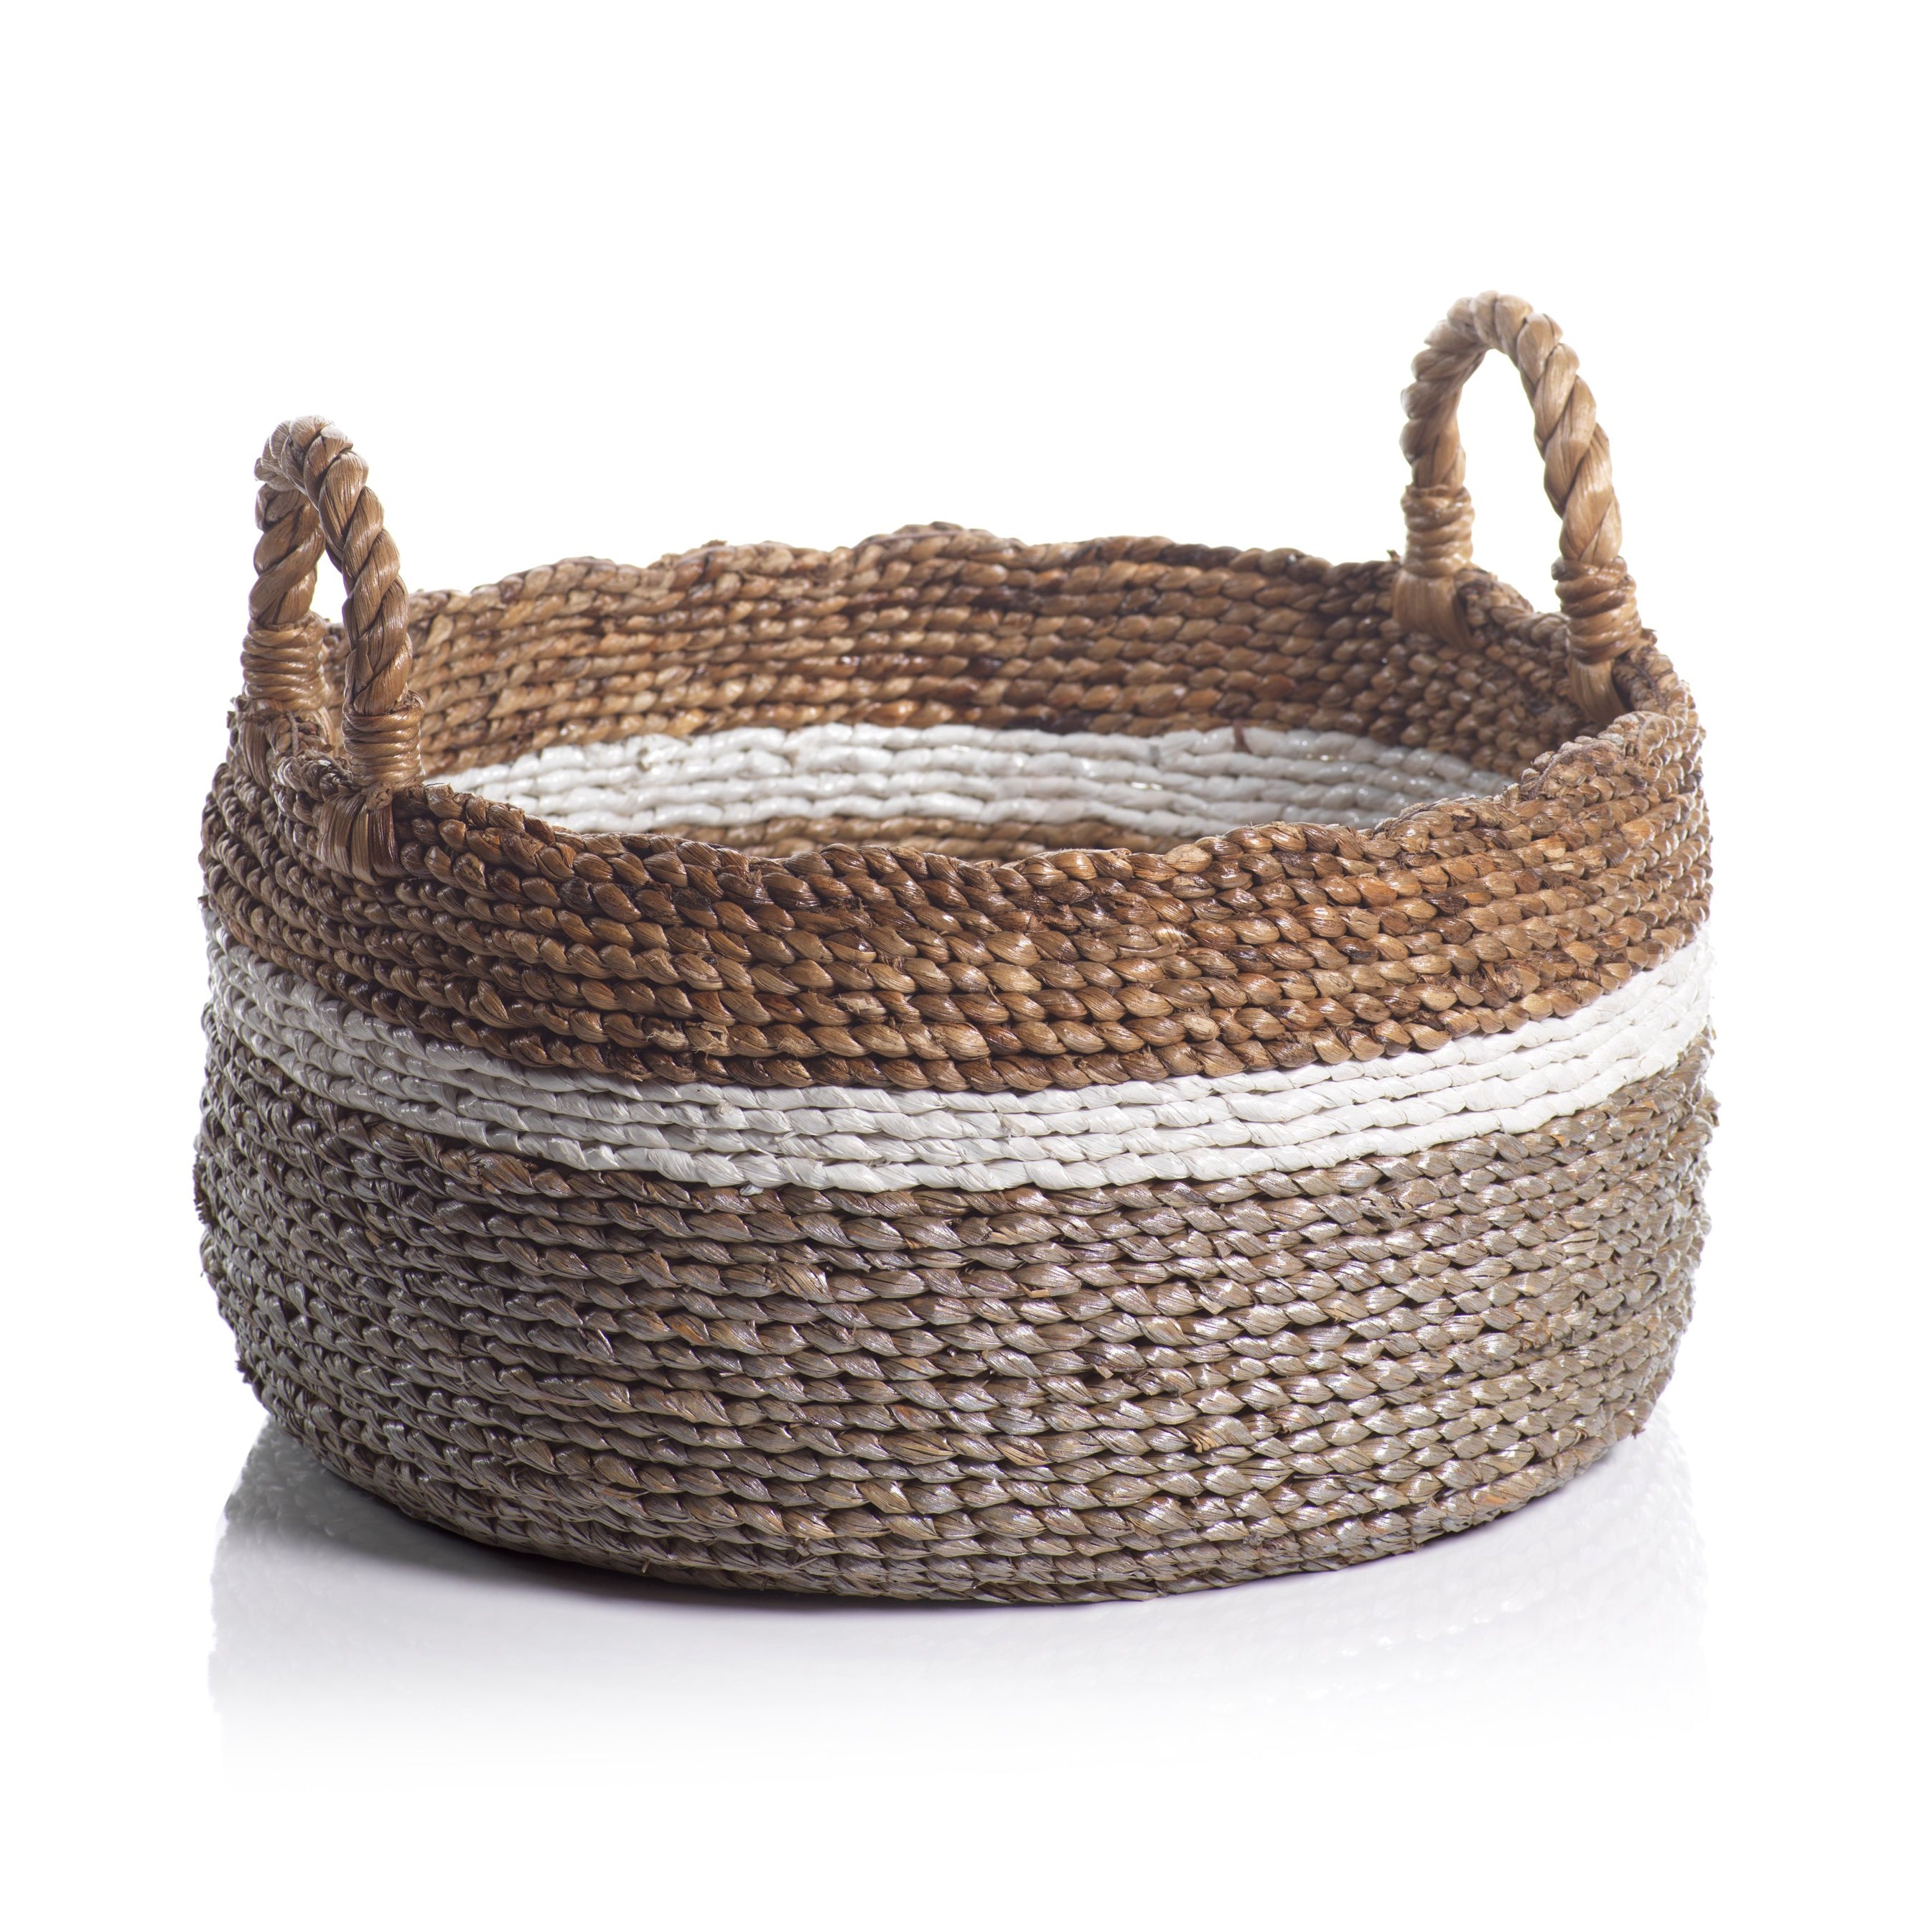 Fira Set of 2 Assorted Seagrass & Water Hyacinth Baskets - CARLYLE AVENUE